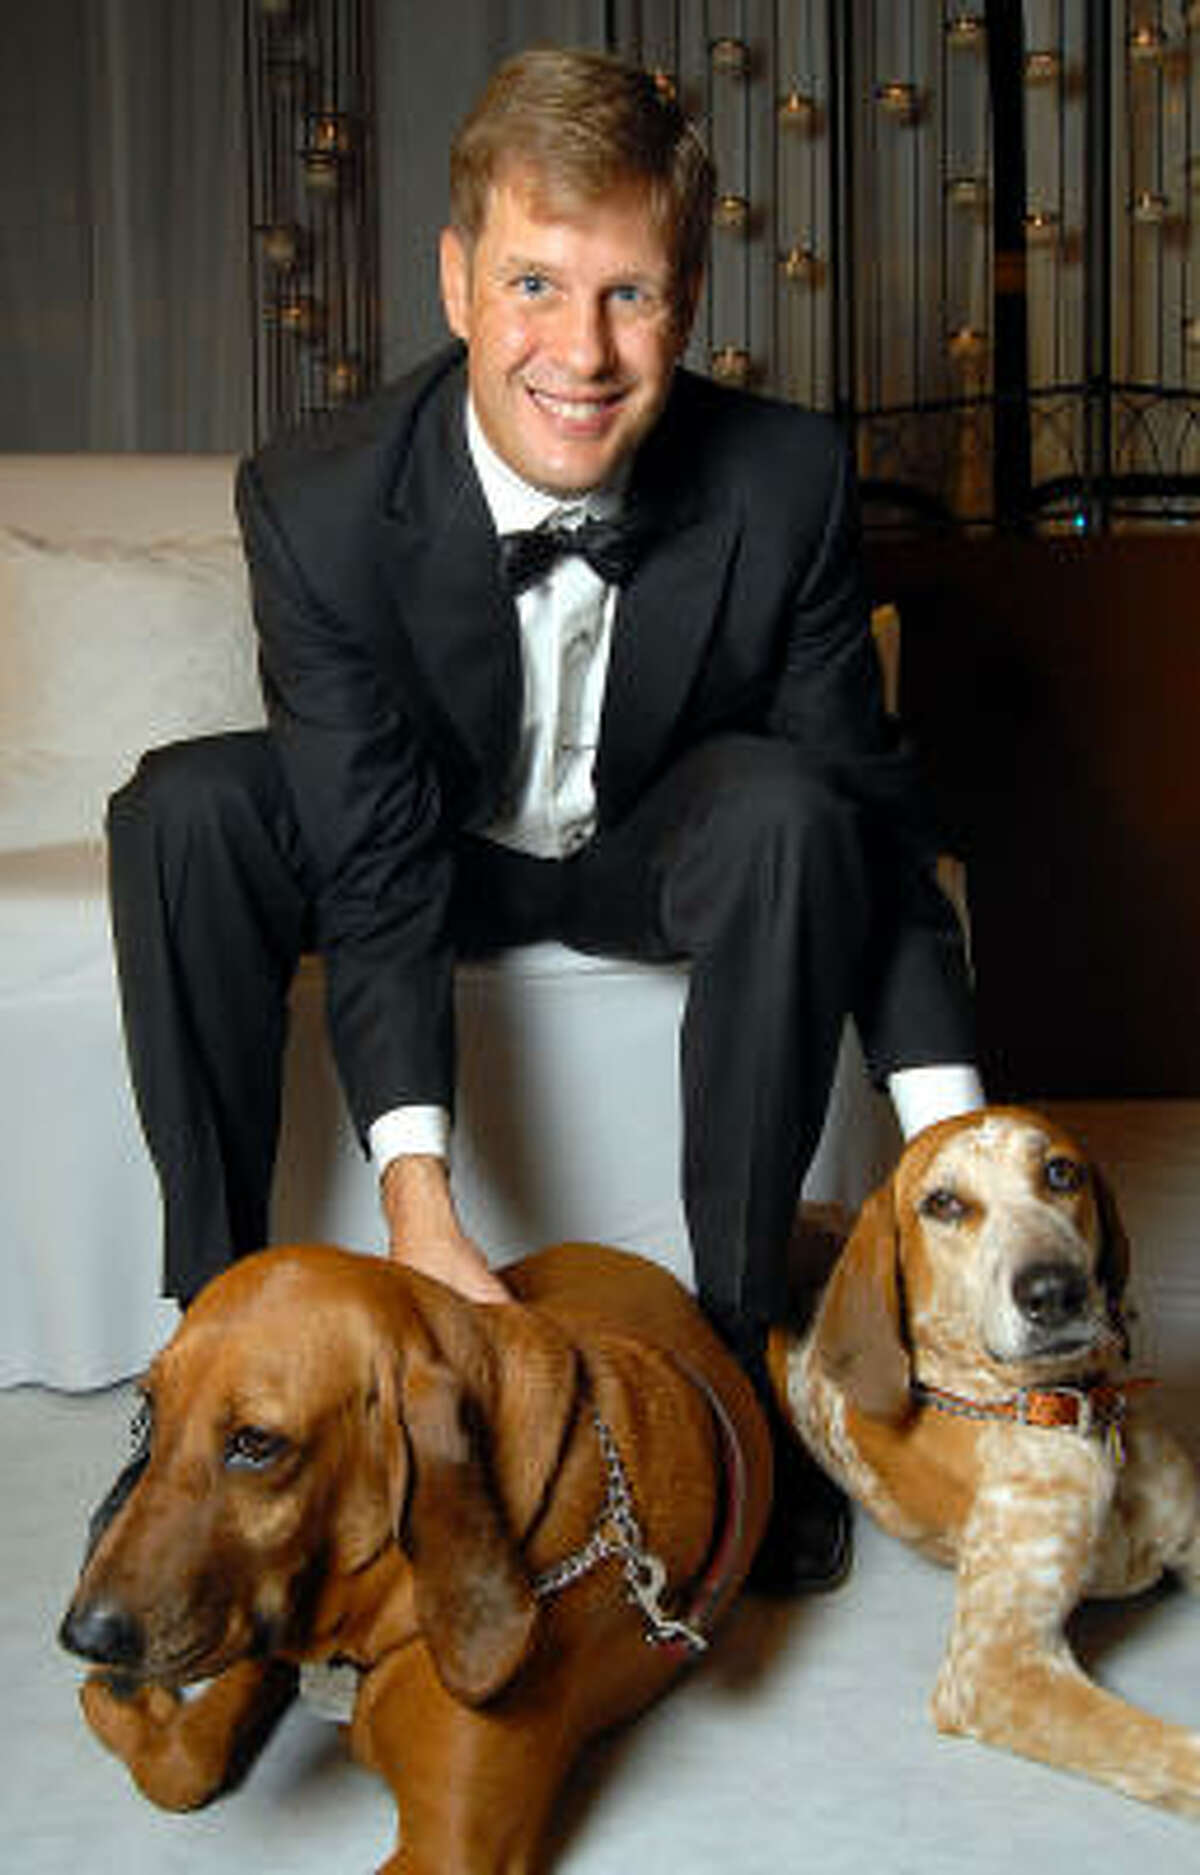 Randy Wade with Abby and Beatrice at the 23rd Annual Celebrity Paws Gala benefiting Citizens for Animal Protection's Shelter and Pet Adoption Center at the Hilton Americas Hotel. Wade's dogs shared the award for 2009 Celebrity Pet of the Year.